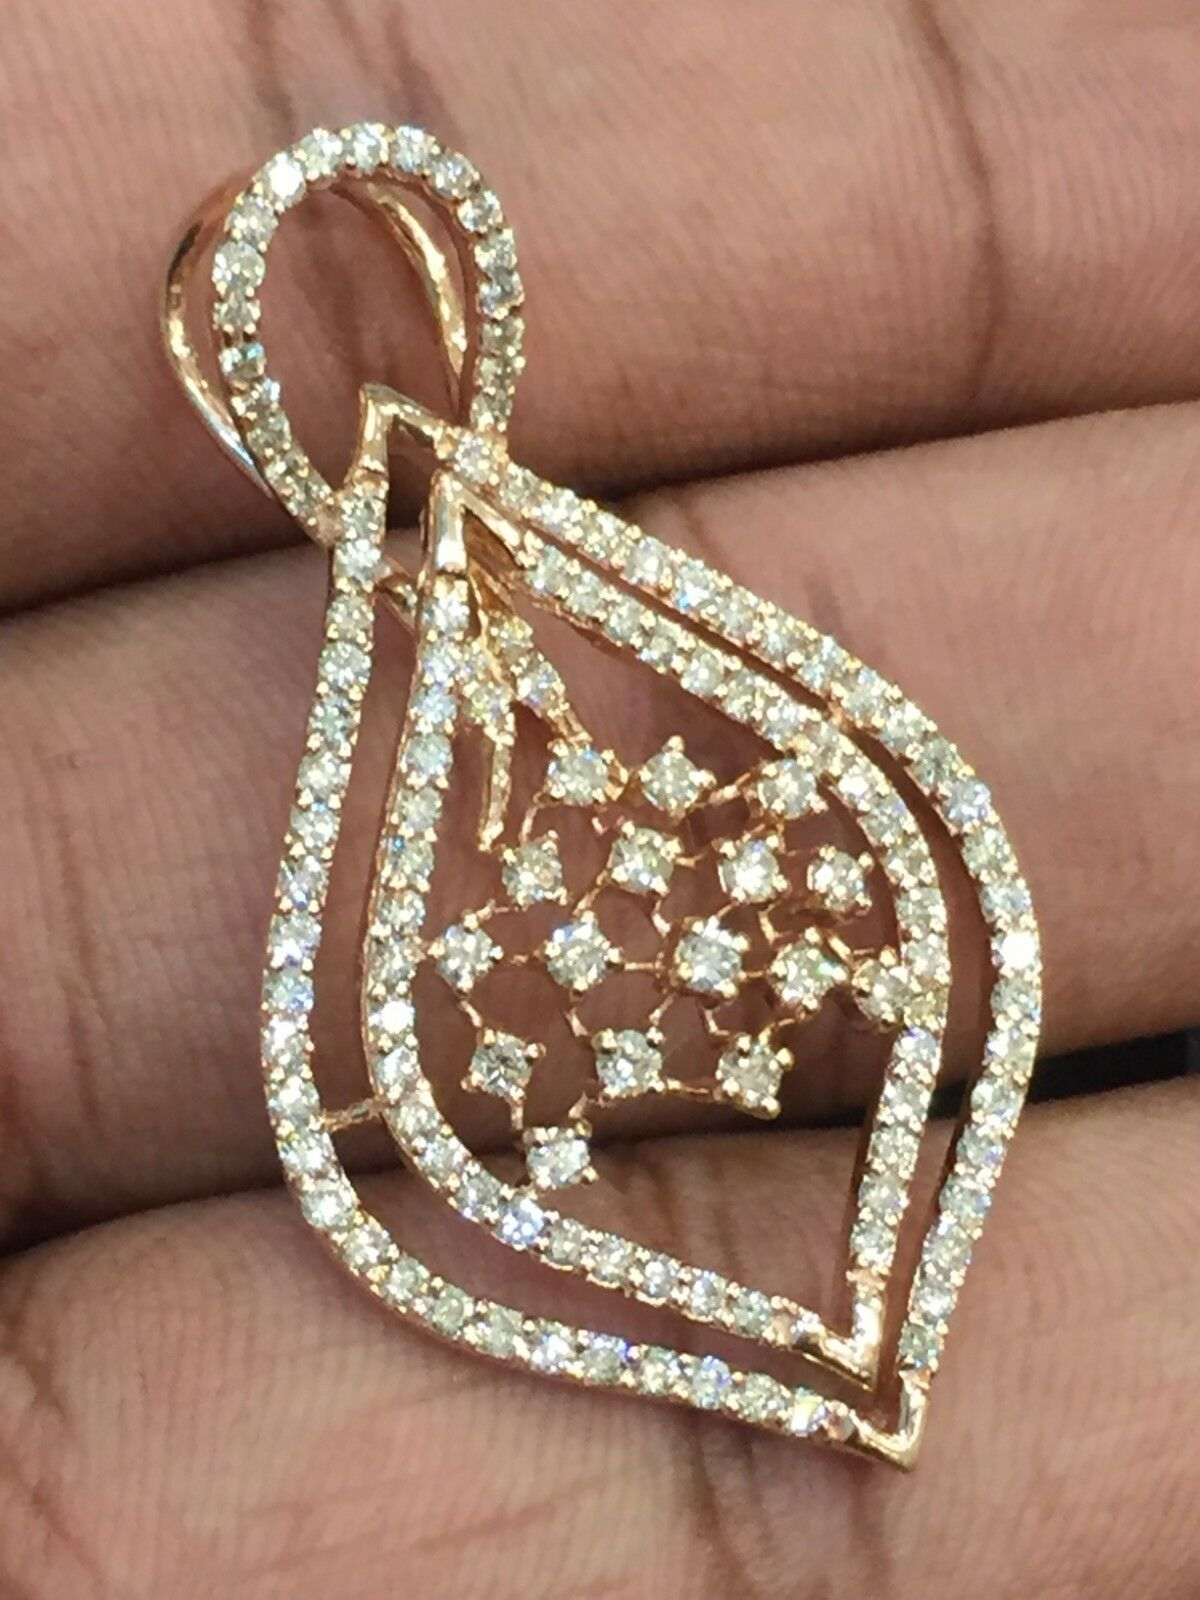 Pave 1.48 Cts Round Brilliant Cut Natural Diamonds Pendant In Fine 14K pink gold